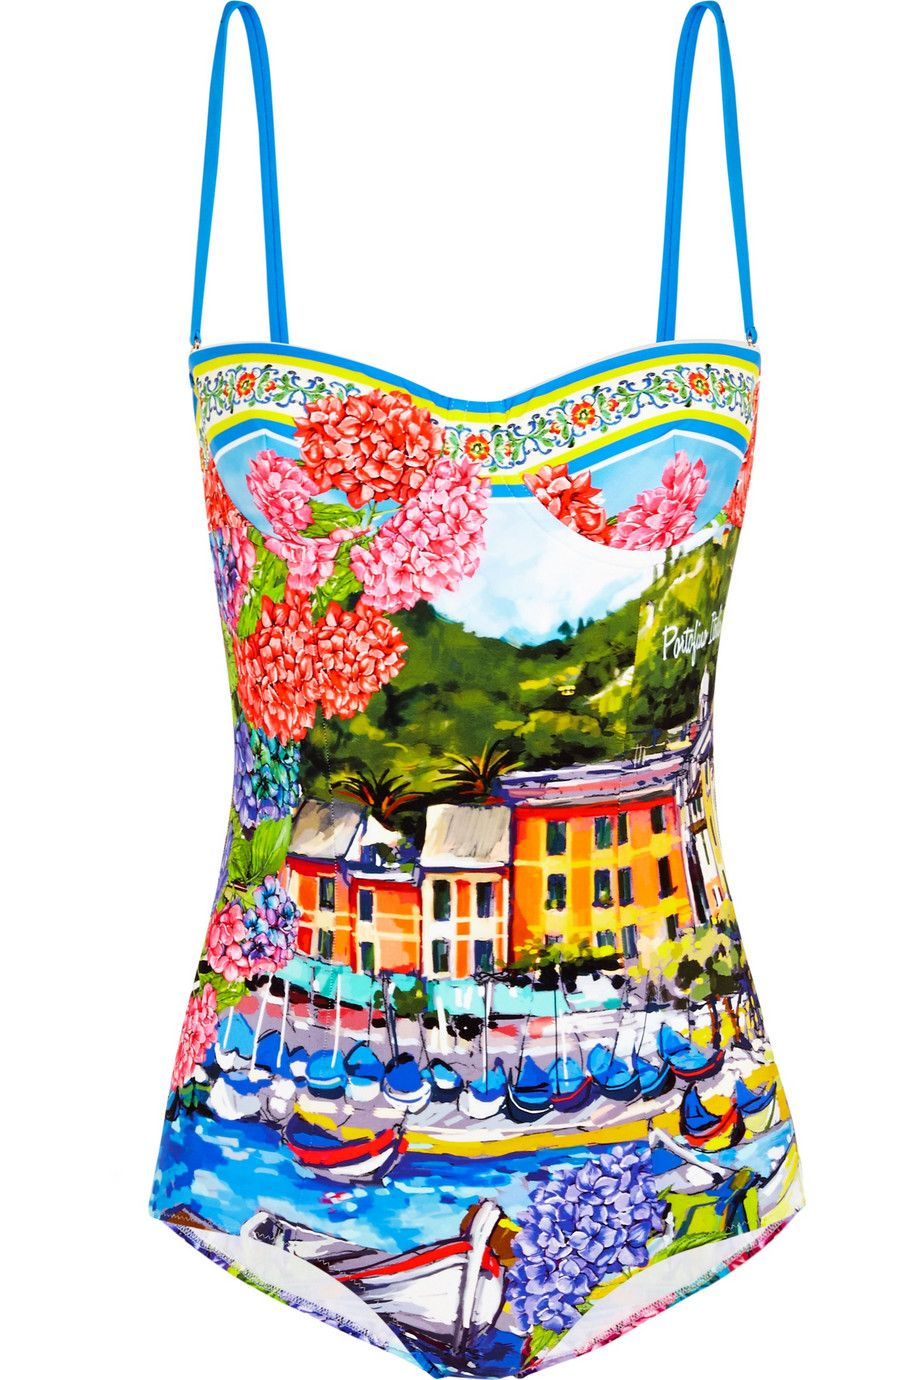 94c9a25620 Dolce & Gabbana - Portofino printed swimsuit | My style - haves ...